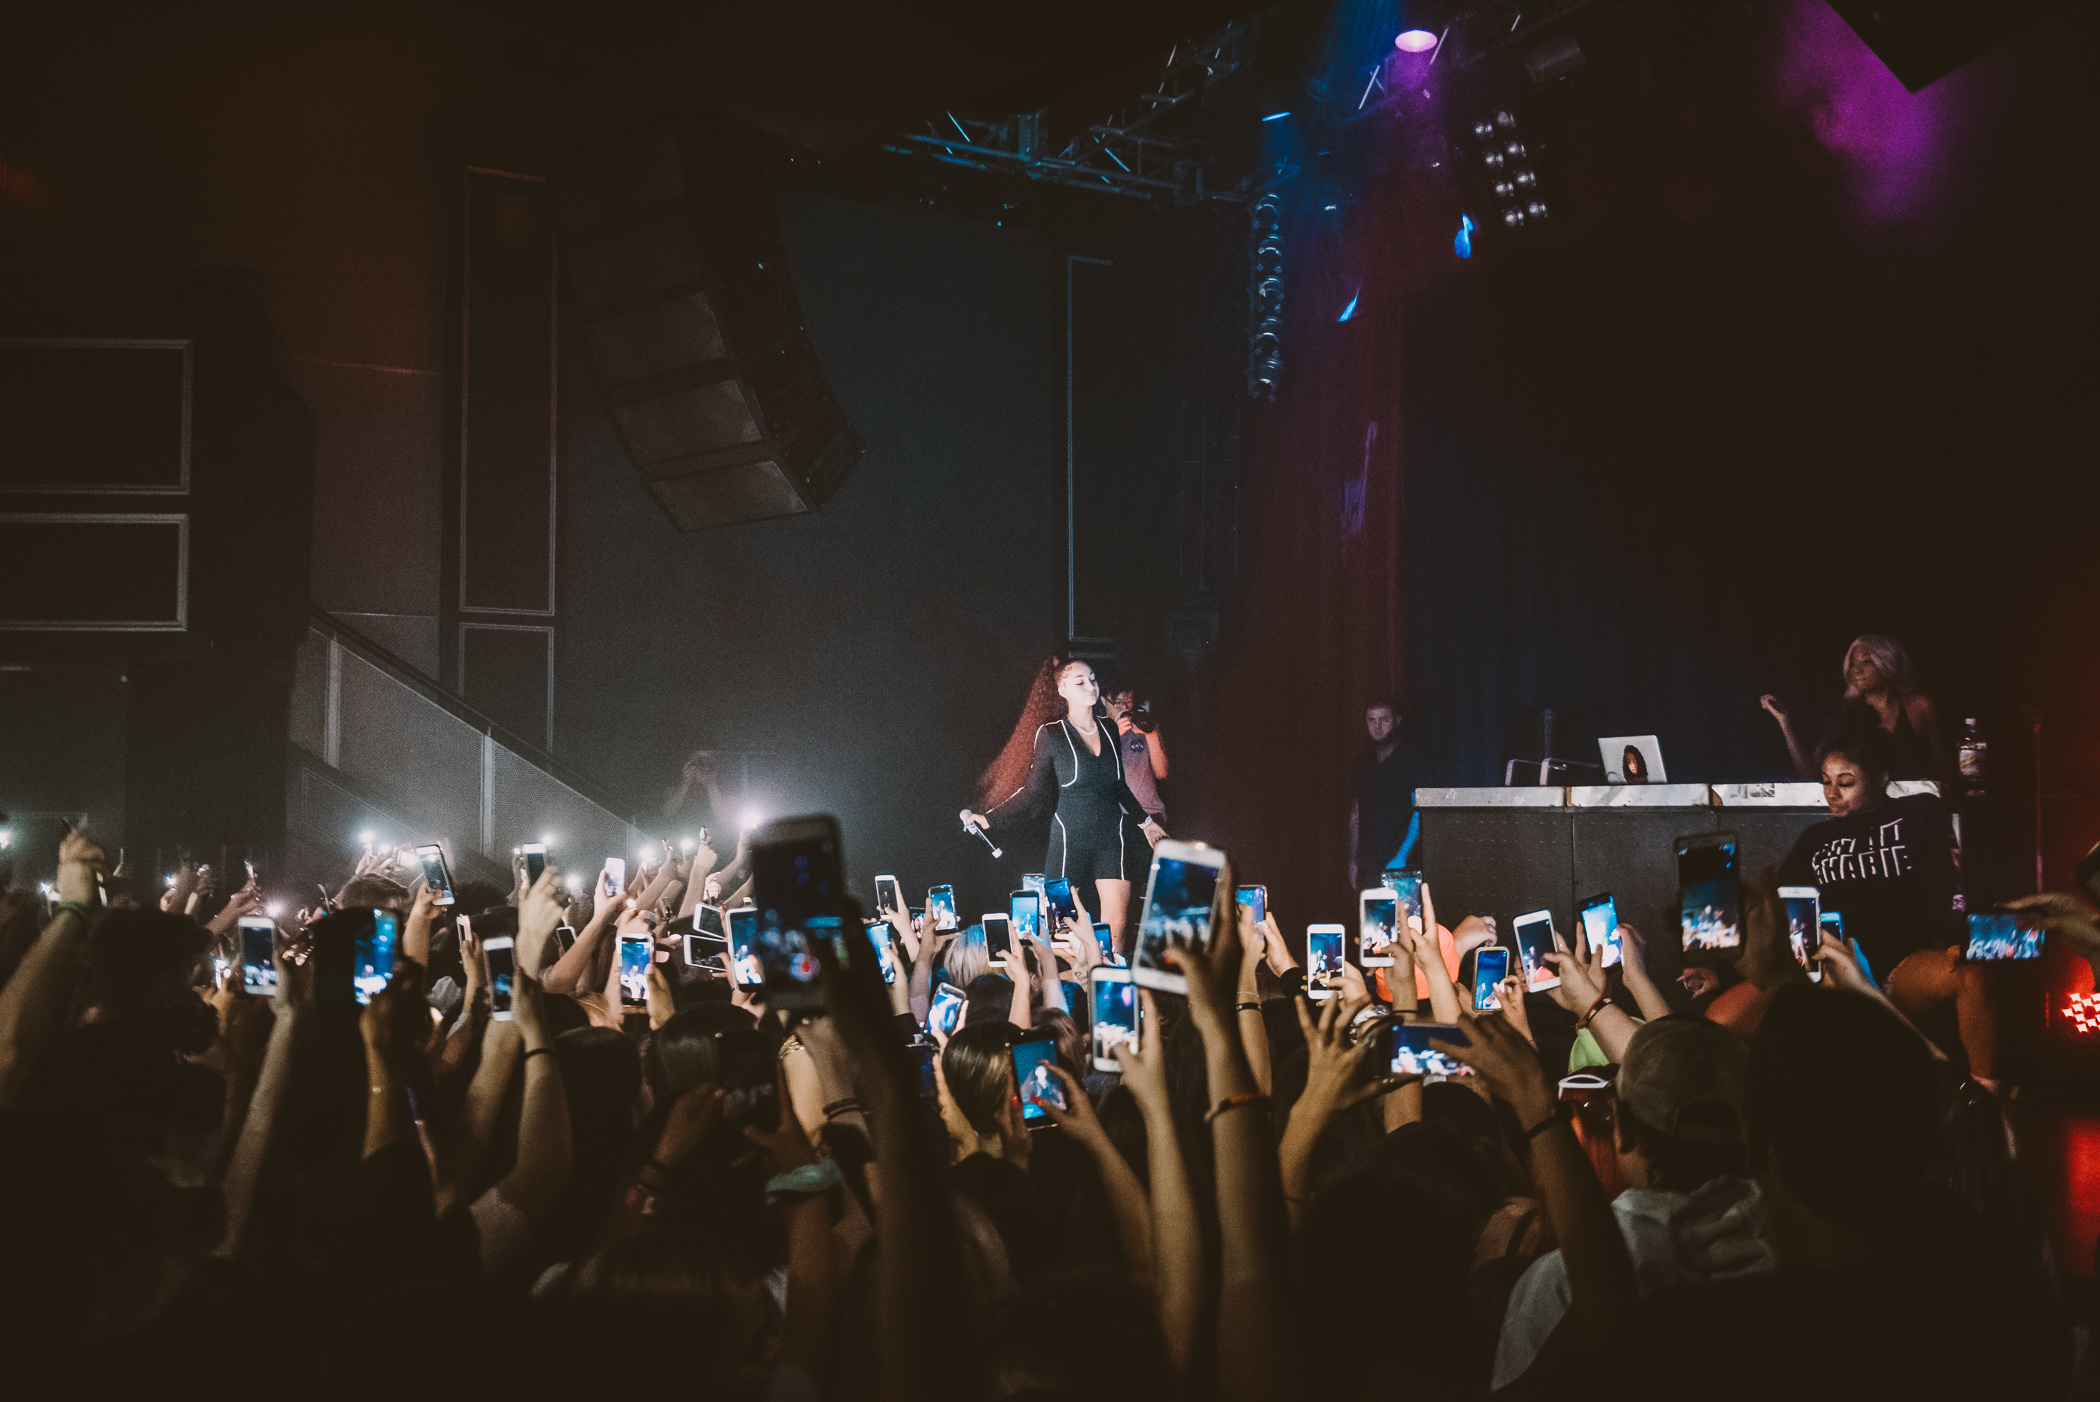 1_Bhad_Bhabie-VENUE-Timothy_Nguyen-20190510 (29 of 45).JPG